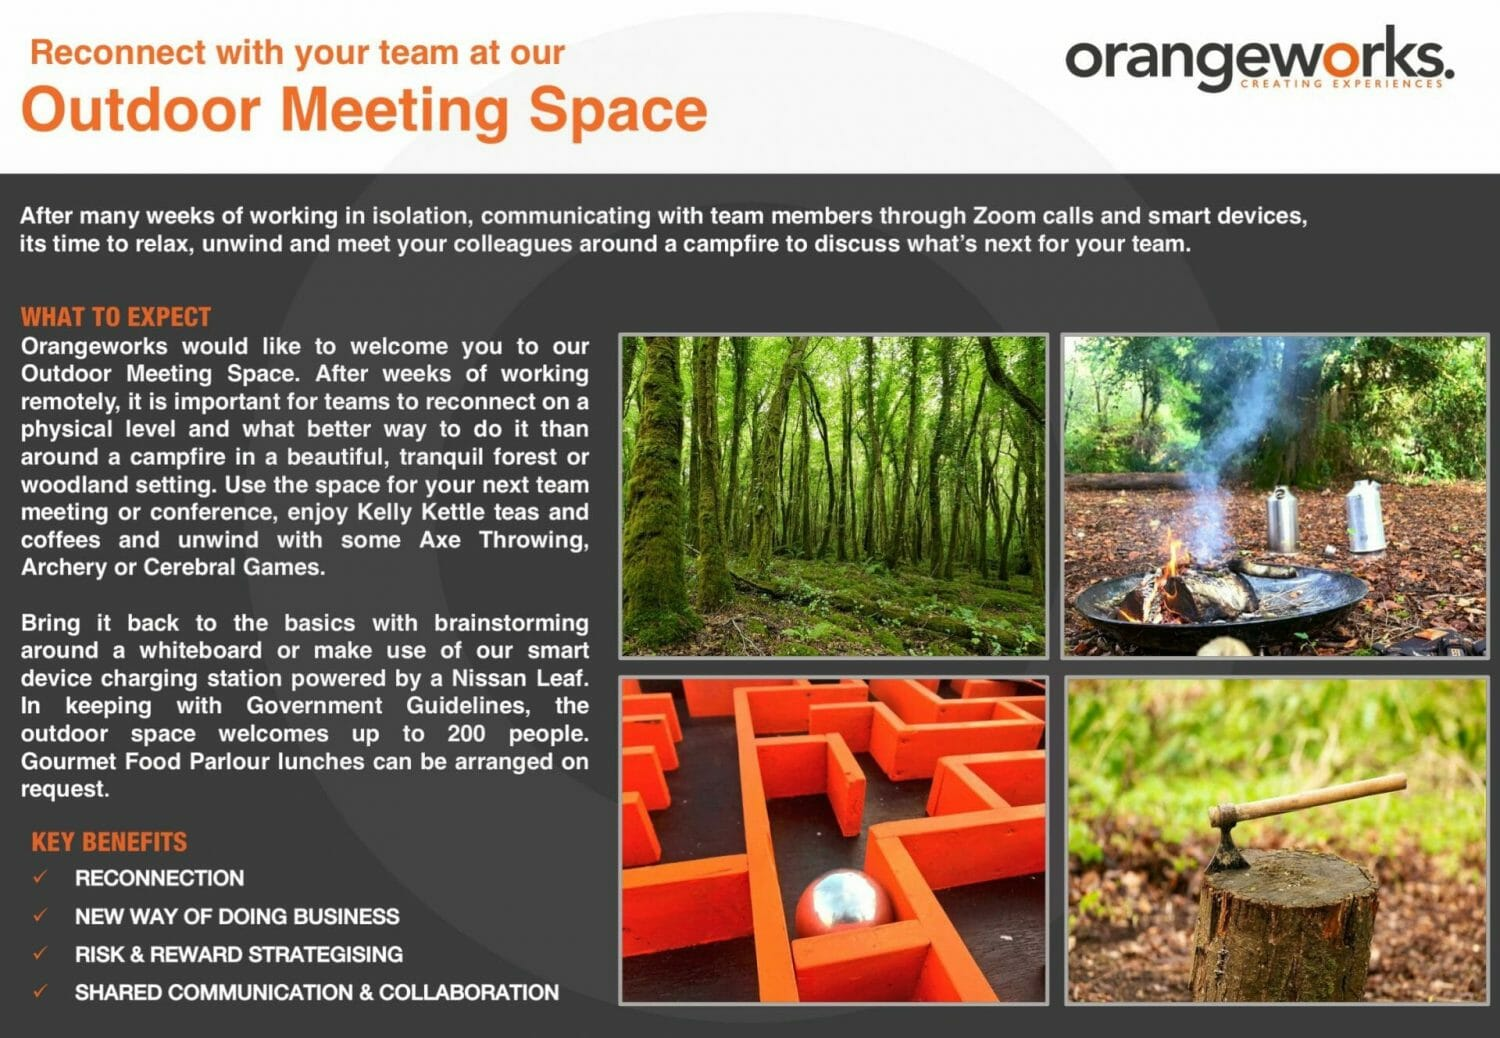 Orangeworks physical team bonding activities and outdoor meeting space